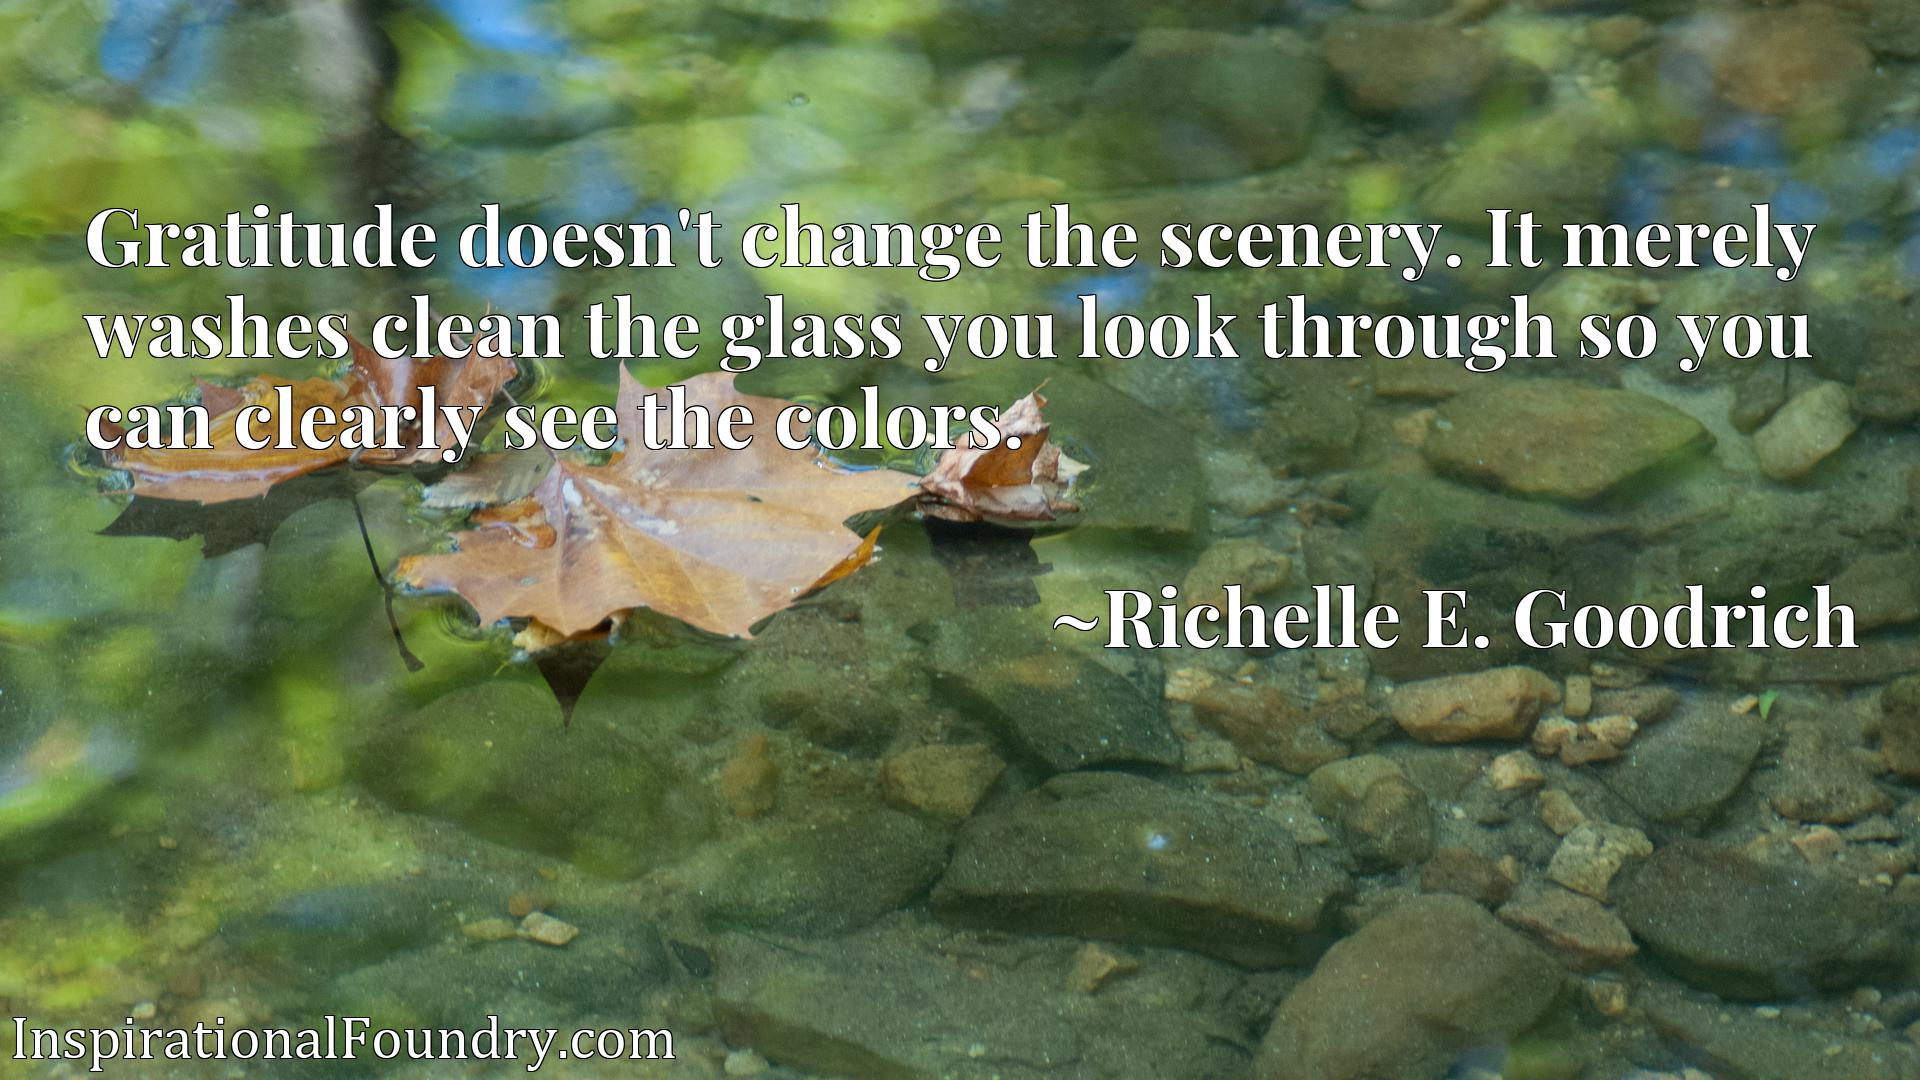 Gratitude doesn't change the scenery. It merely washes clean the glass you look through so you can clearly see the colors.